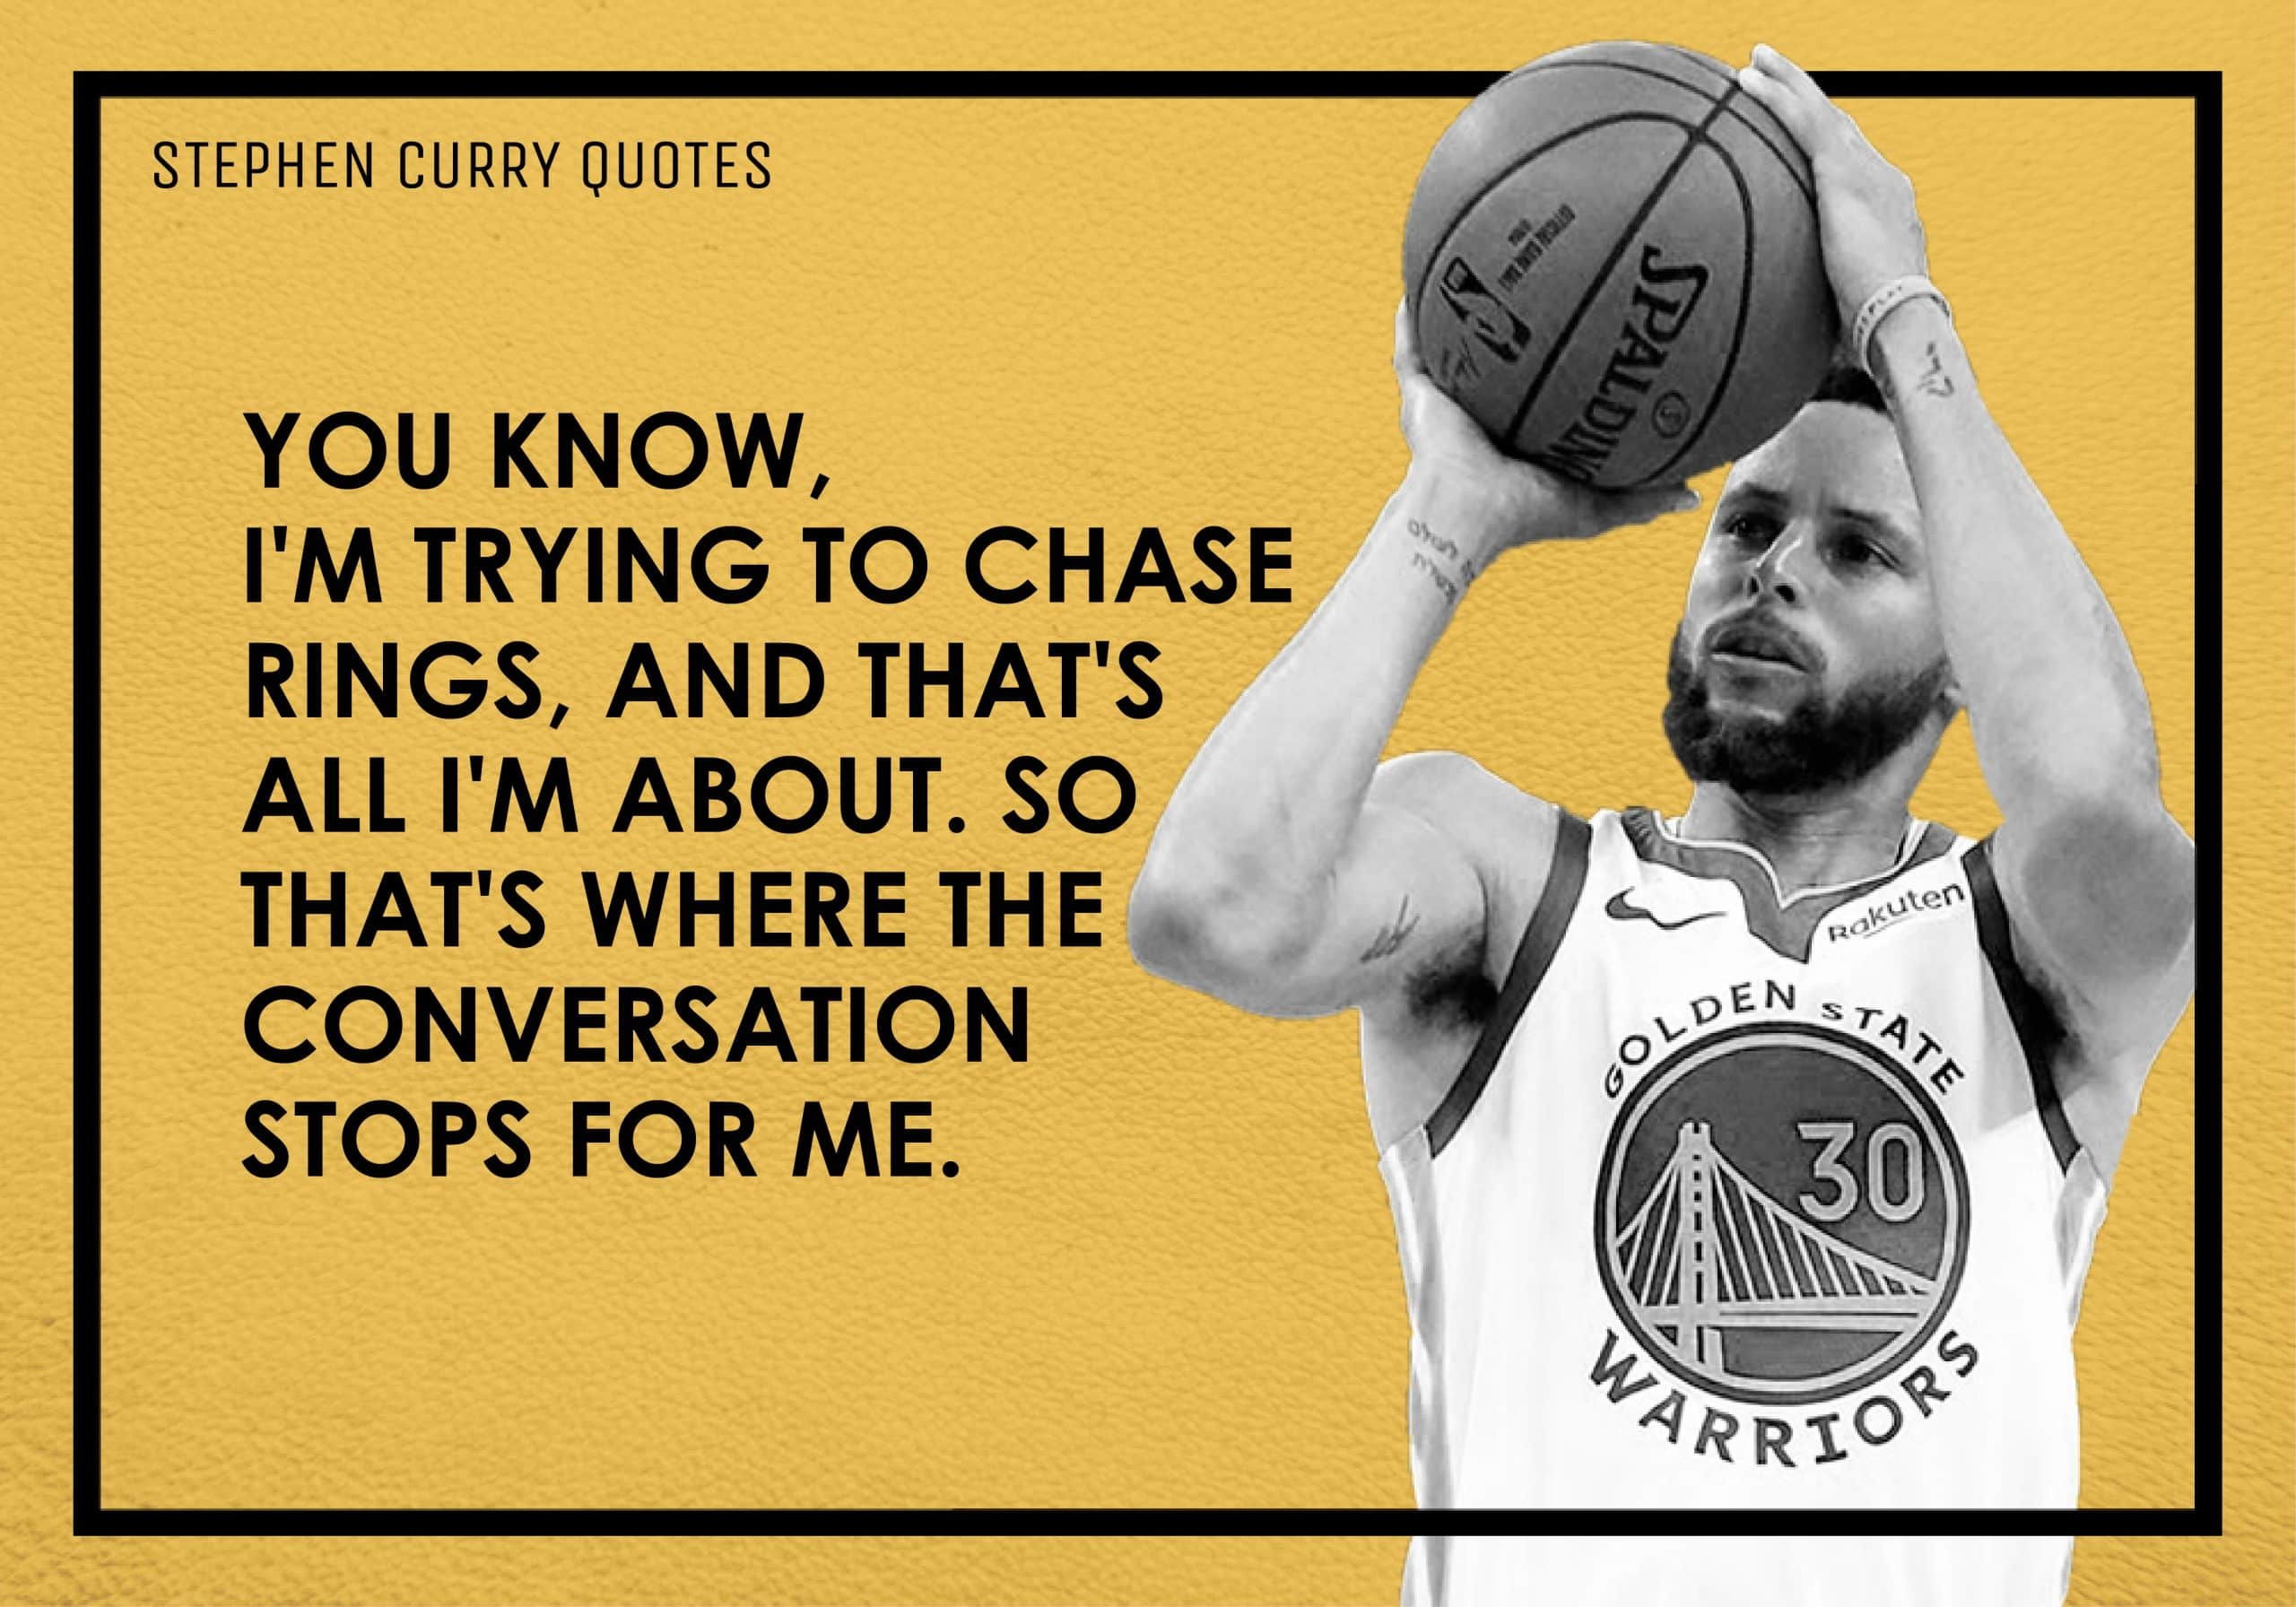 Stephen Curry Quotes (2)